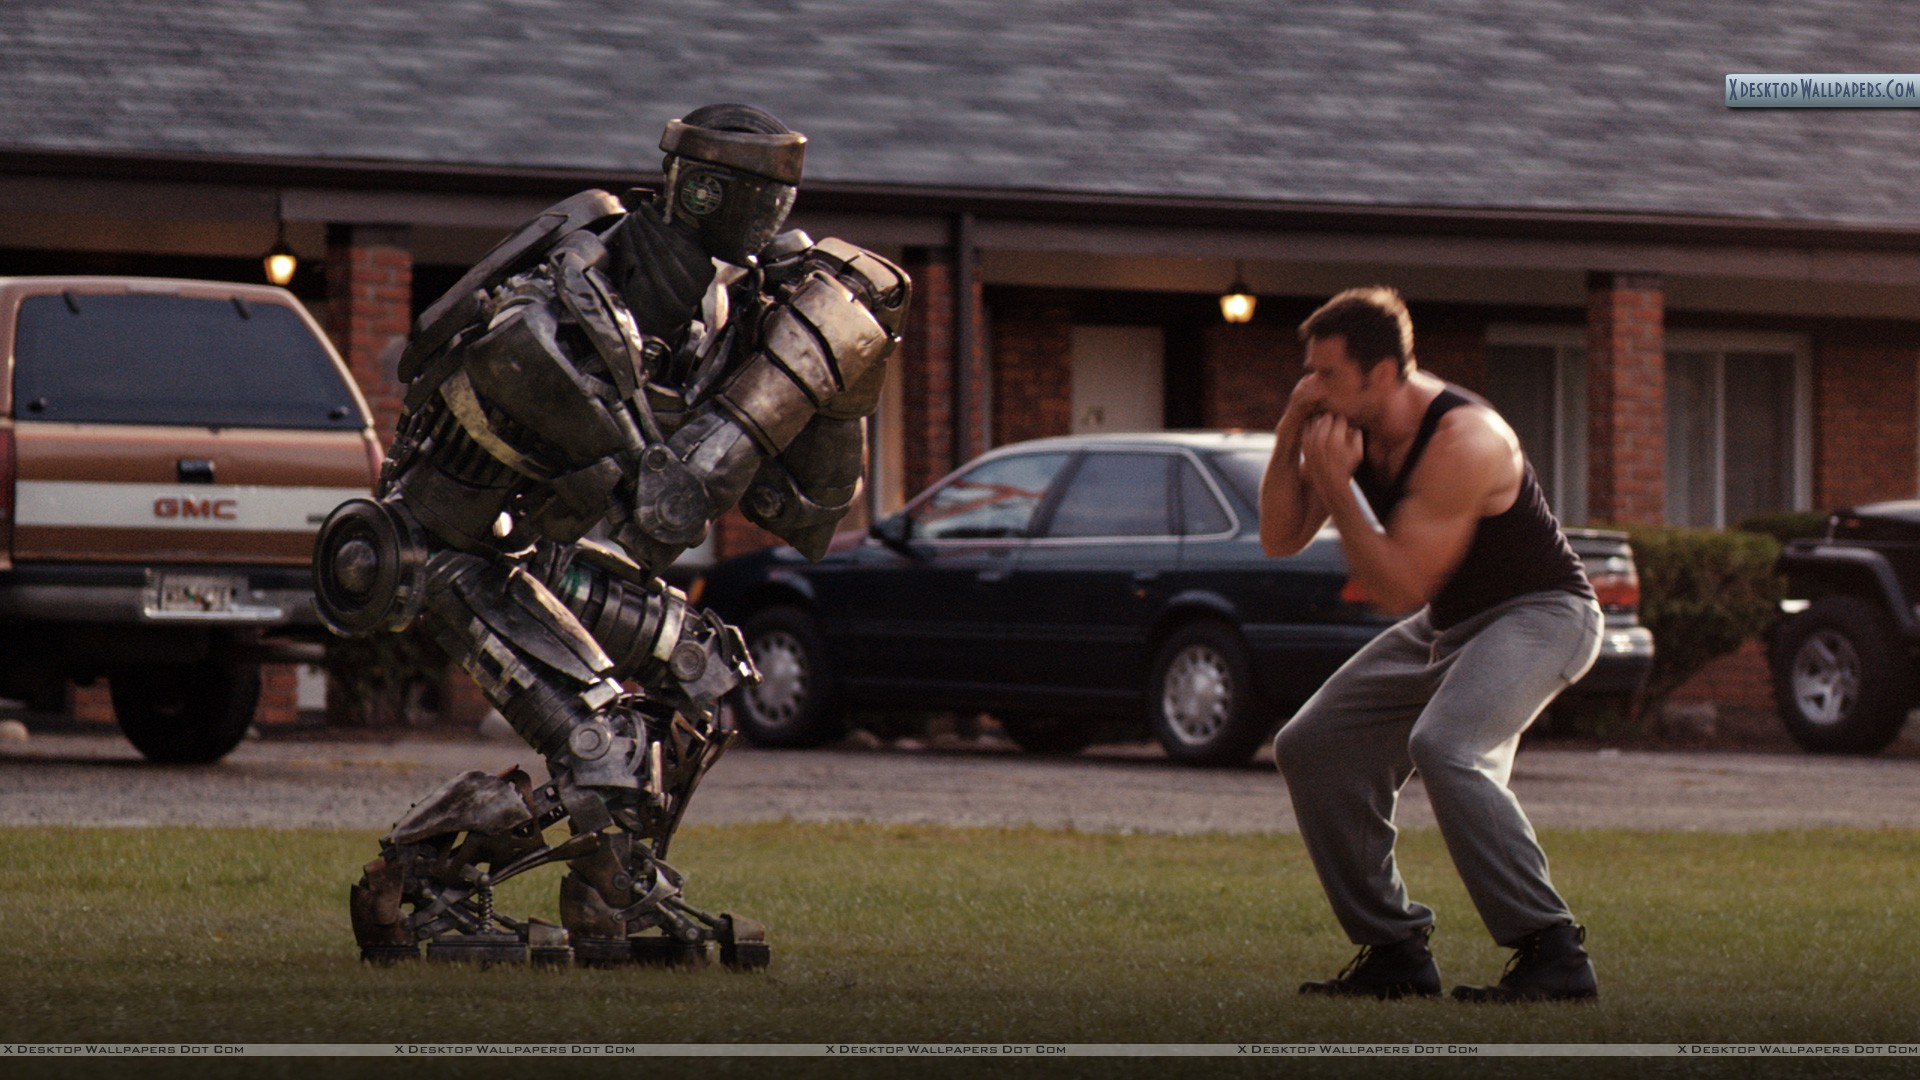 real steel wallpapers, photos & images in hd